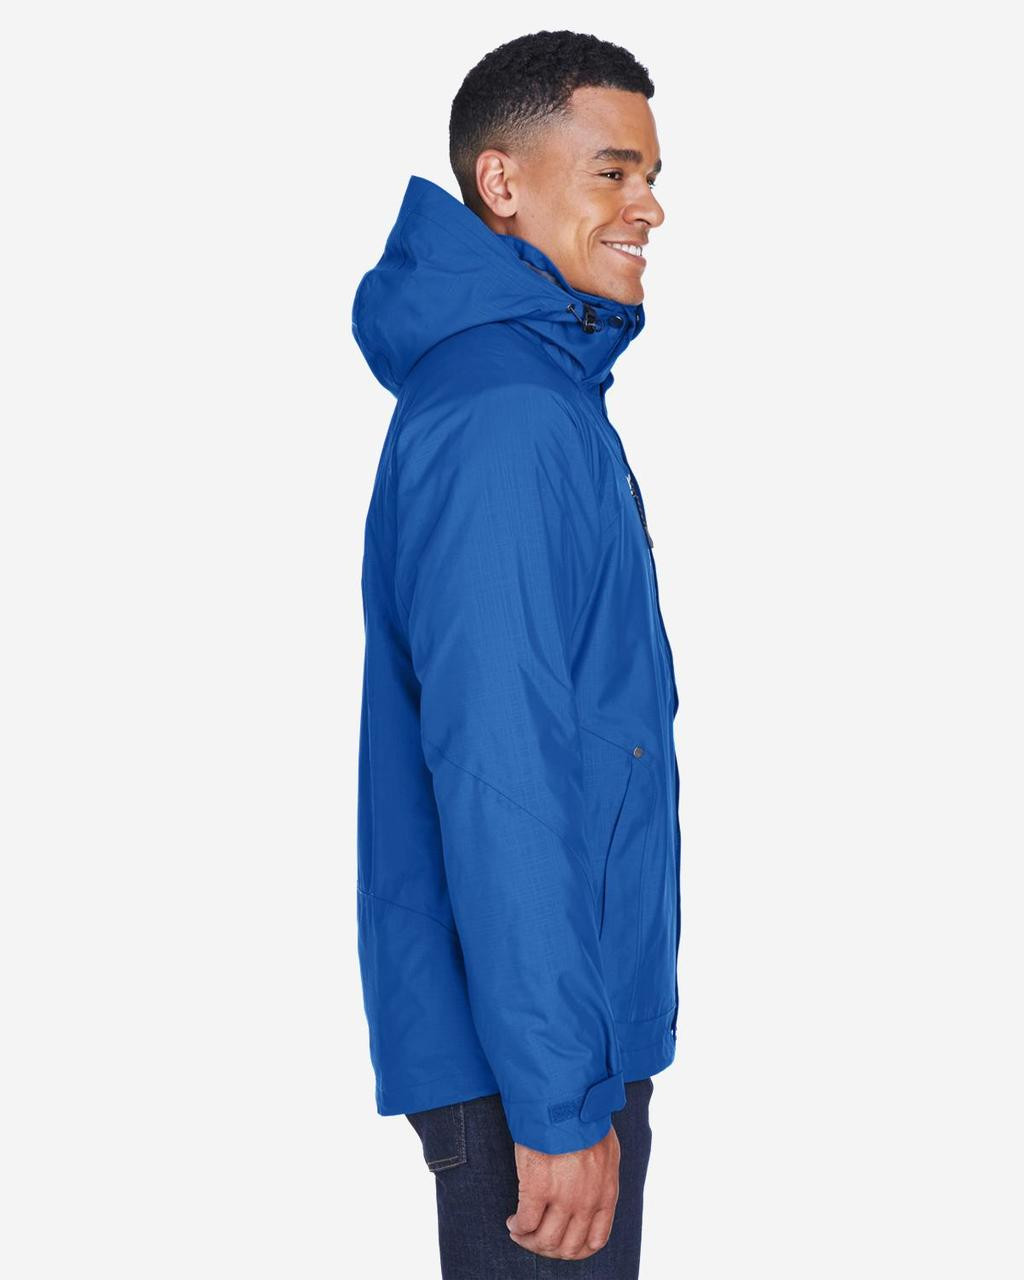 Nautical Blue - Side, 88178 North End Caprice 3-in-1 Jacket with Soft Shell Liner | BlankClothing.ca